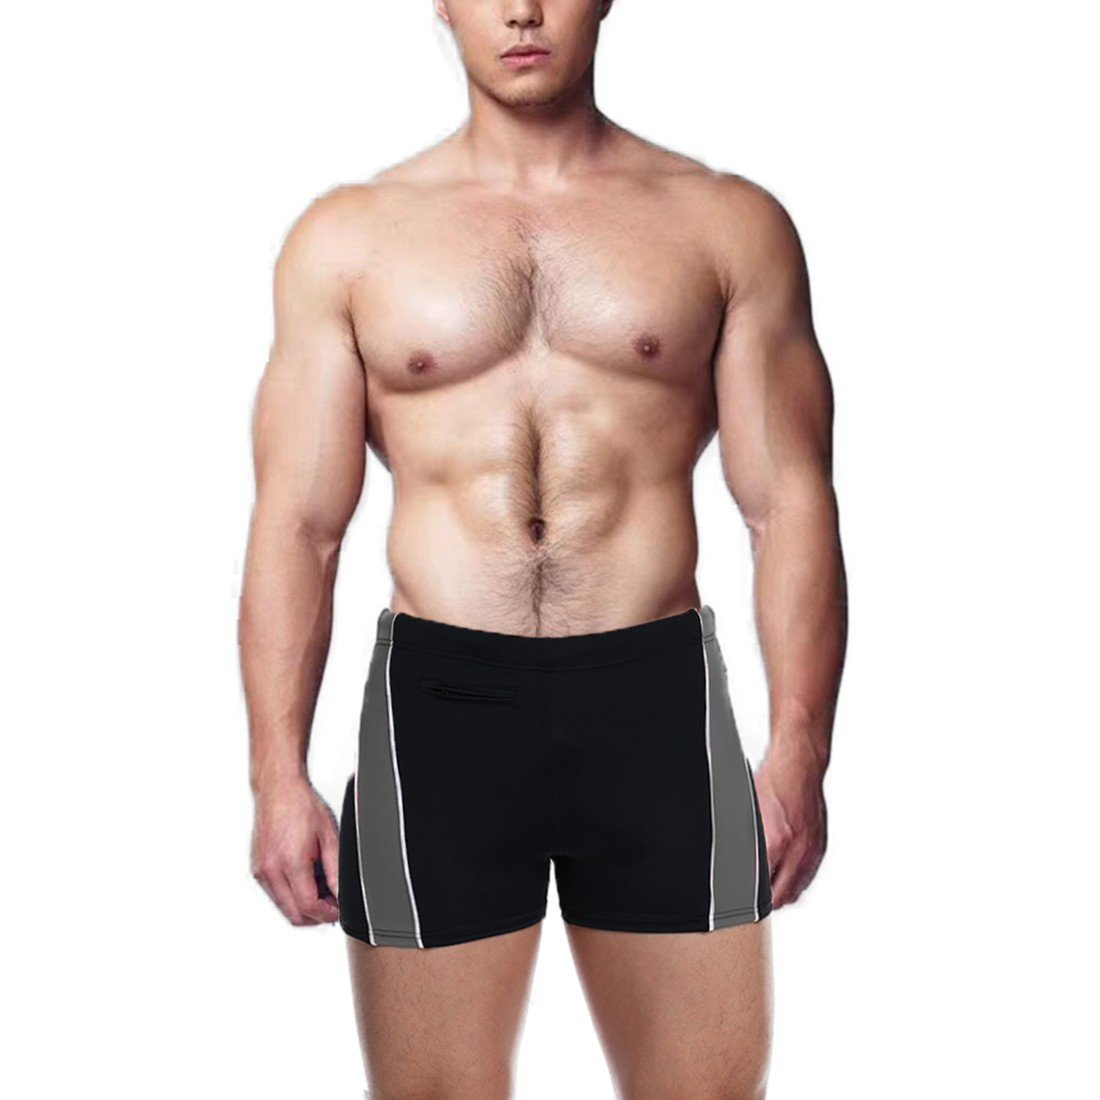 COLO Men Swimwear Solid Basic Tunks Surf Shorts Swimming Briefs Quick Dry Plus Size with Zipper Pocket 3XL